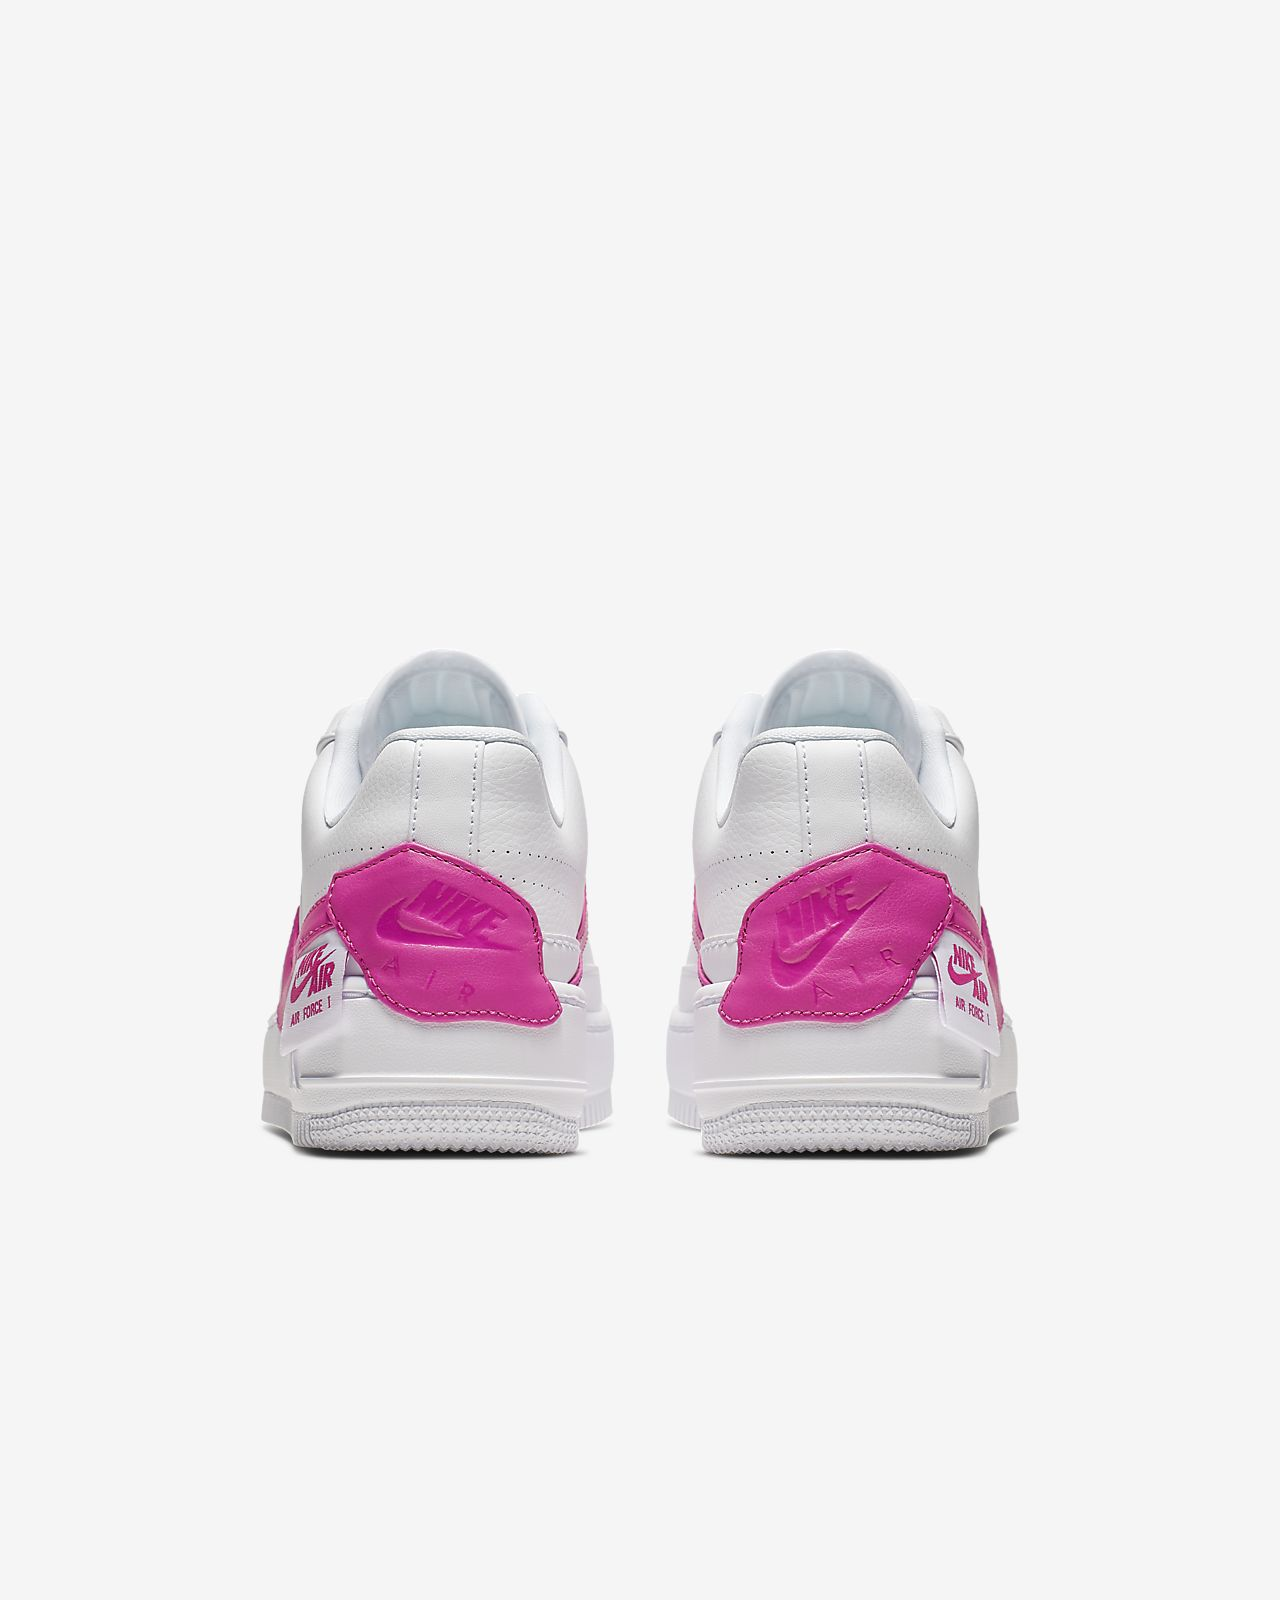 new arrival 36c63 00854 ... Nike Air Force 1 Jester XX Shoe